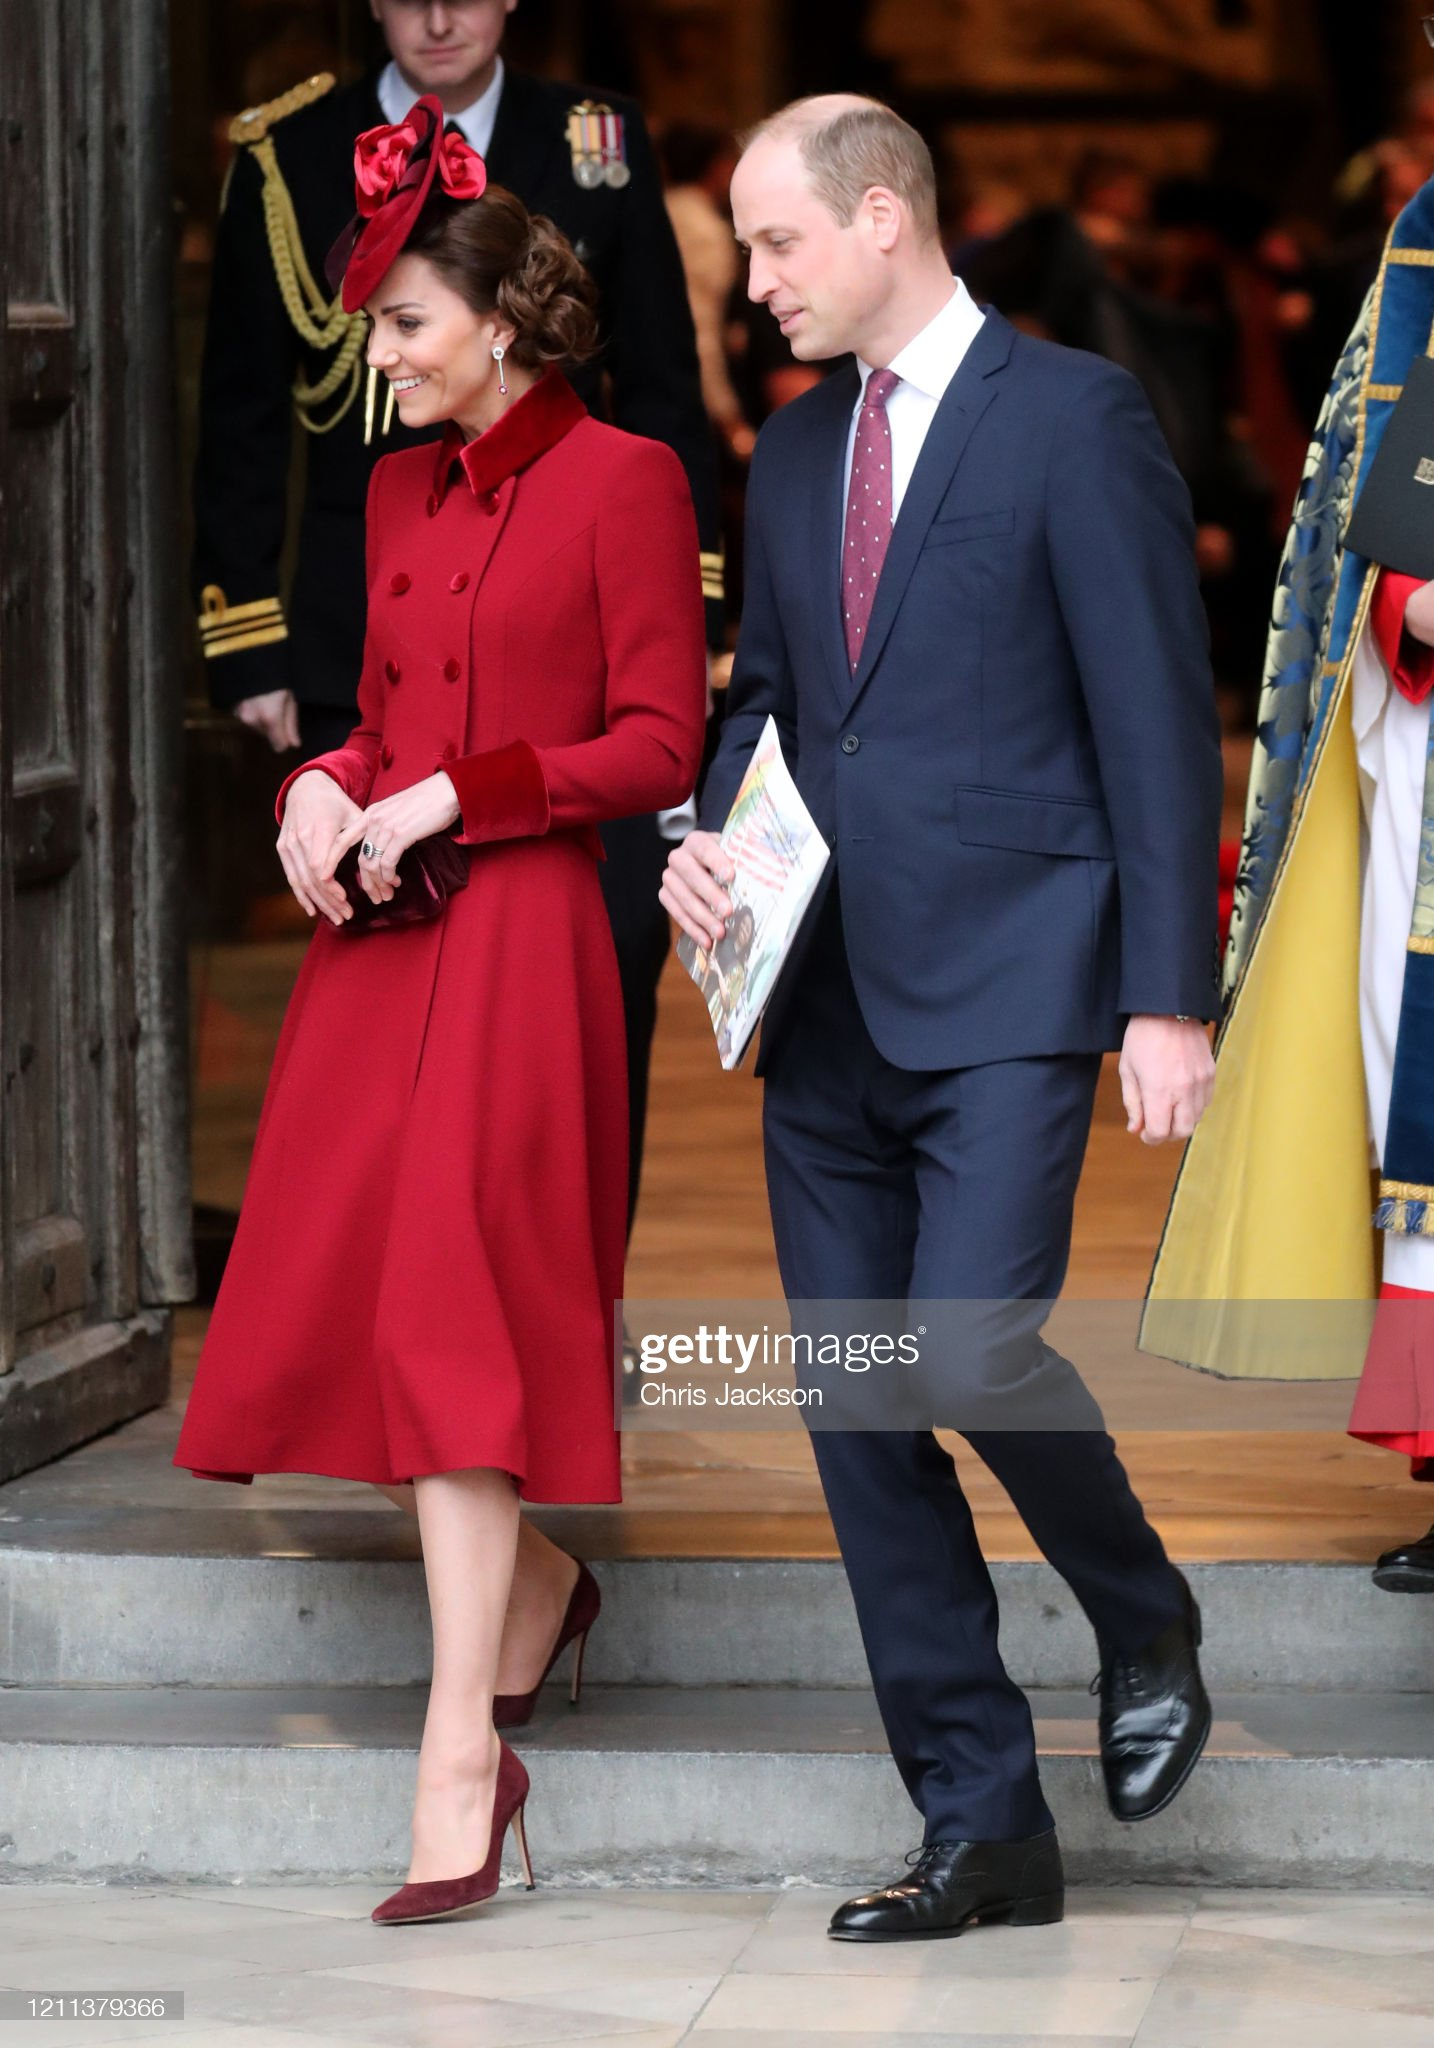 https://media.gettyimages.com/photos/catherine-duchess-of-cambridge-and-prince-william-duke-of-cambridge-picture-id1211379366?s=2048x2048